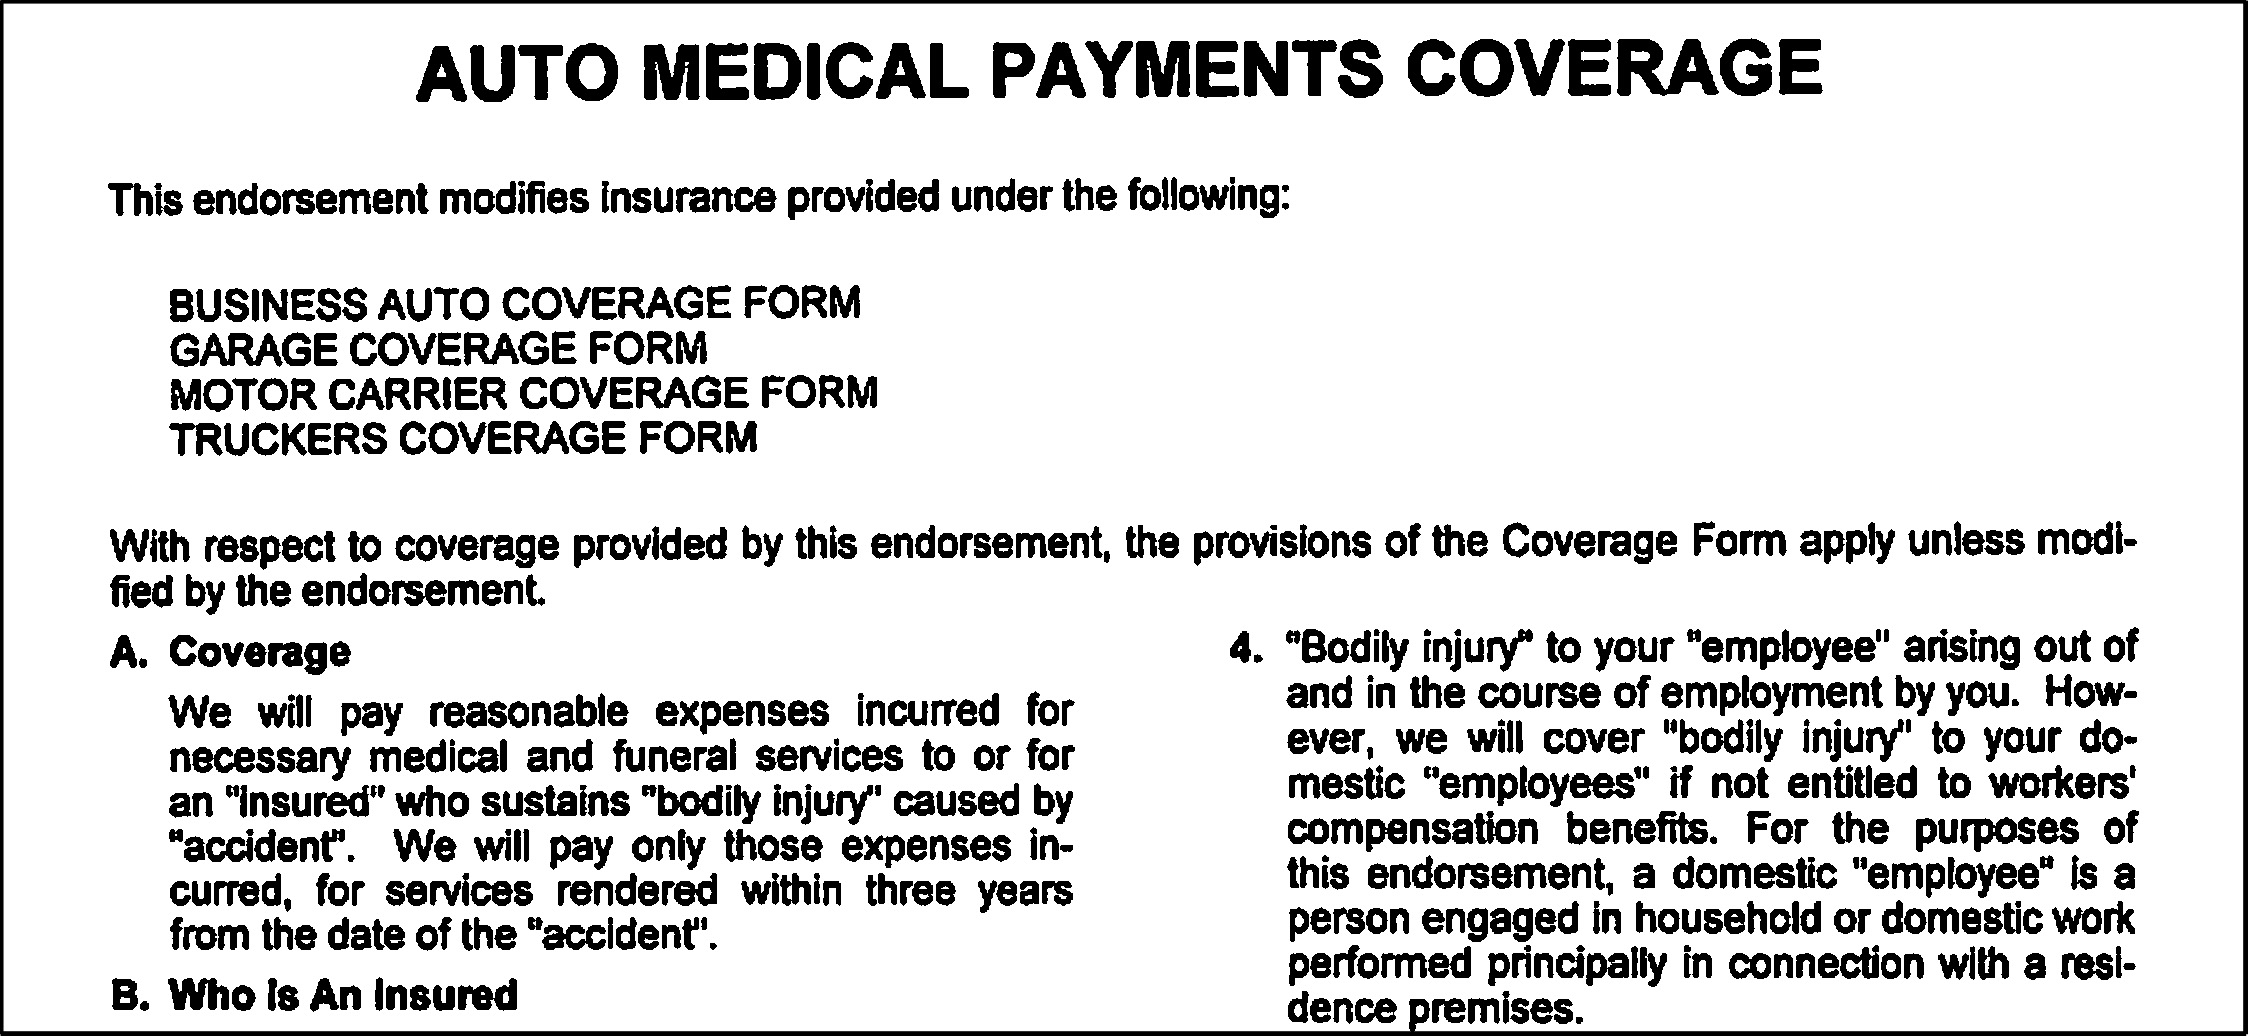 When Does an Insurer Become Obligated to Make Medical Payments?